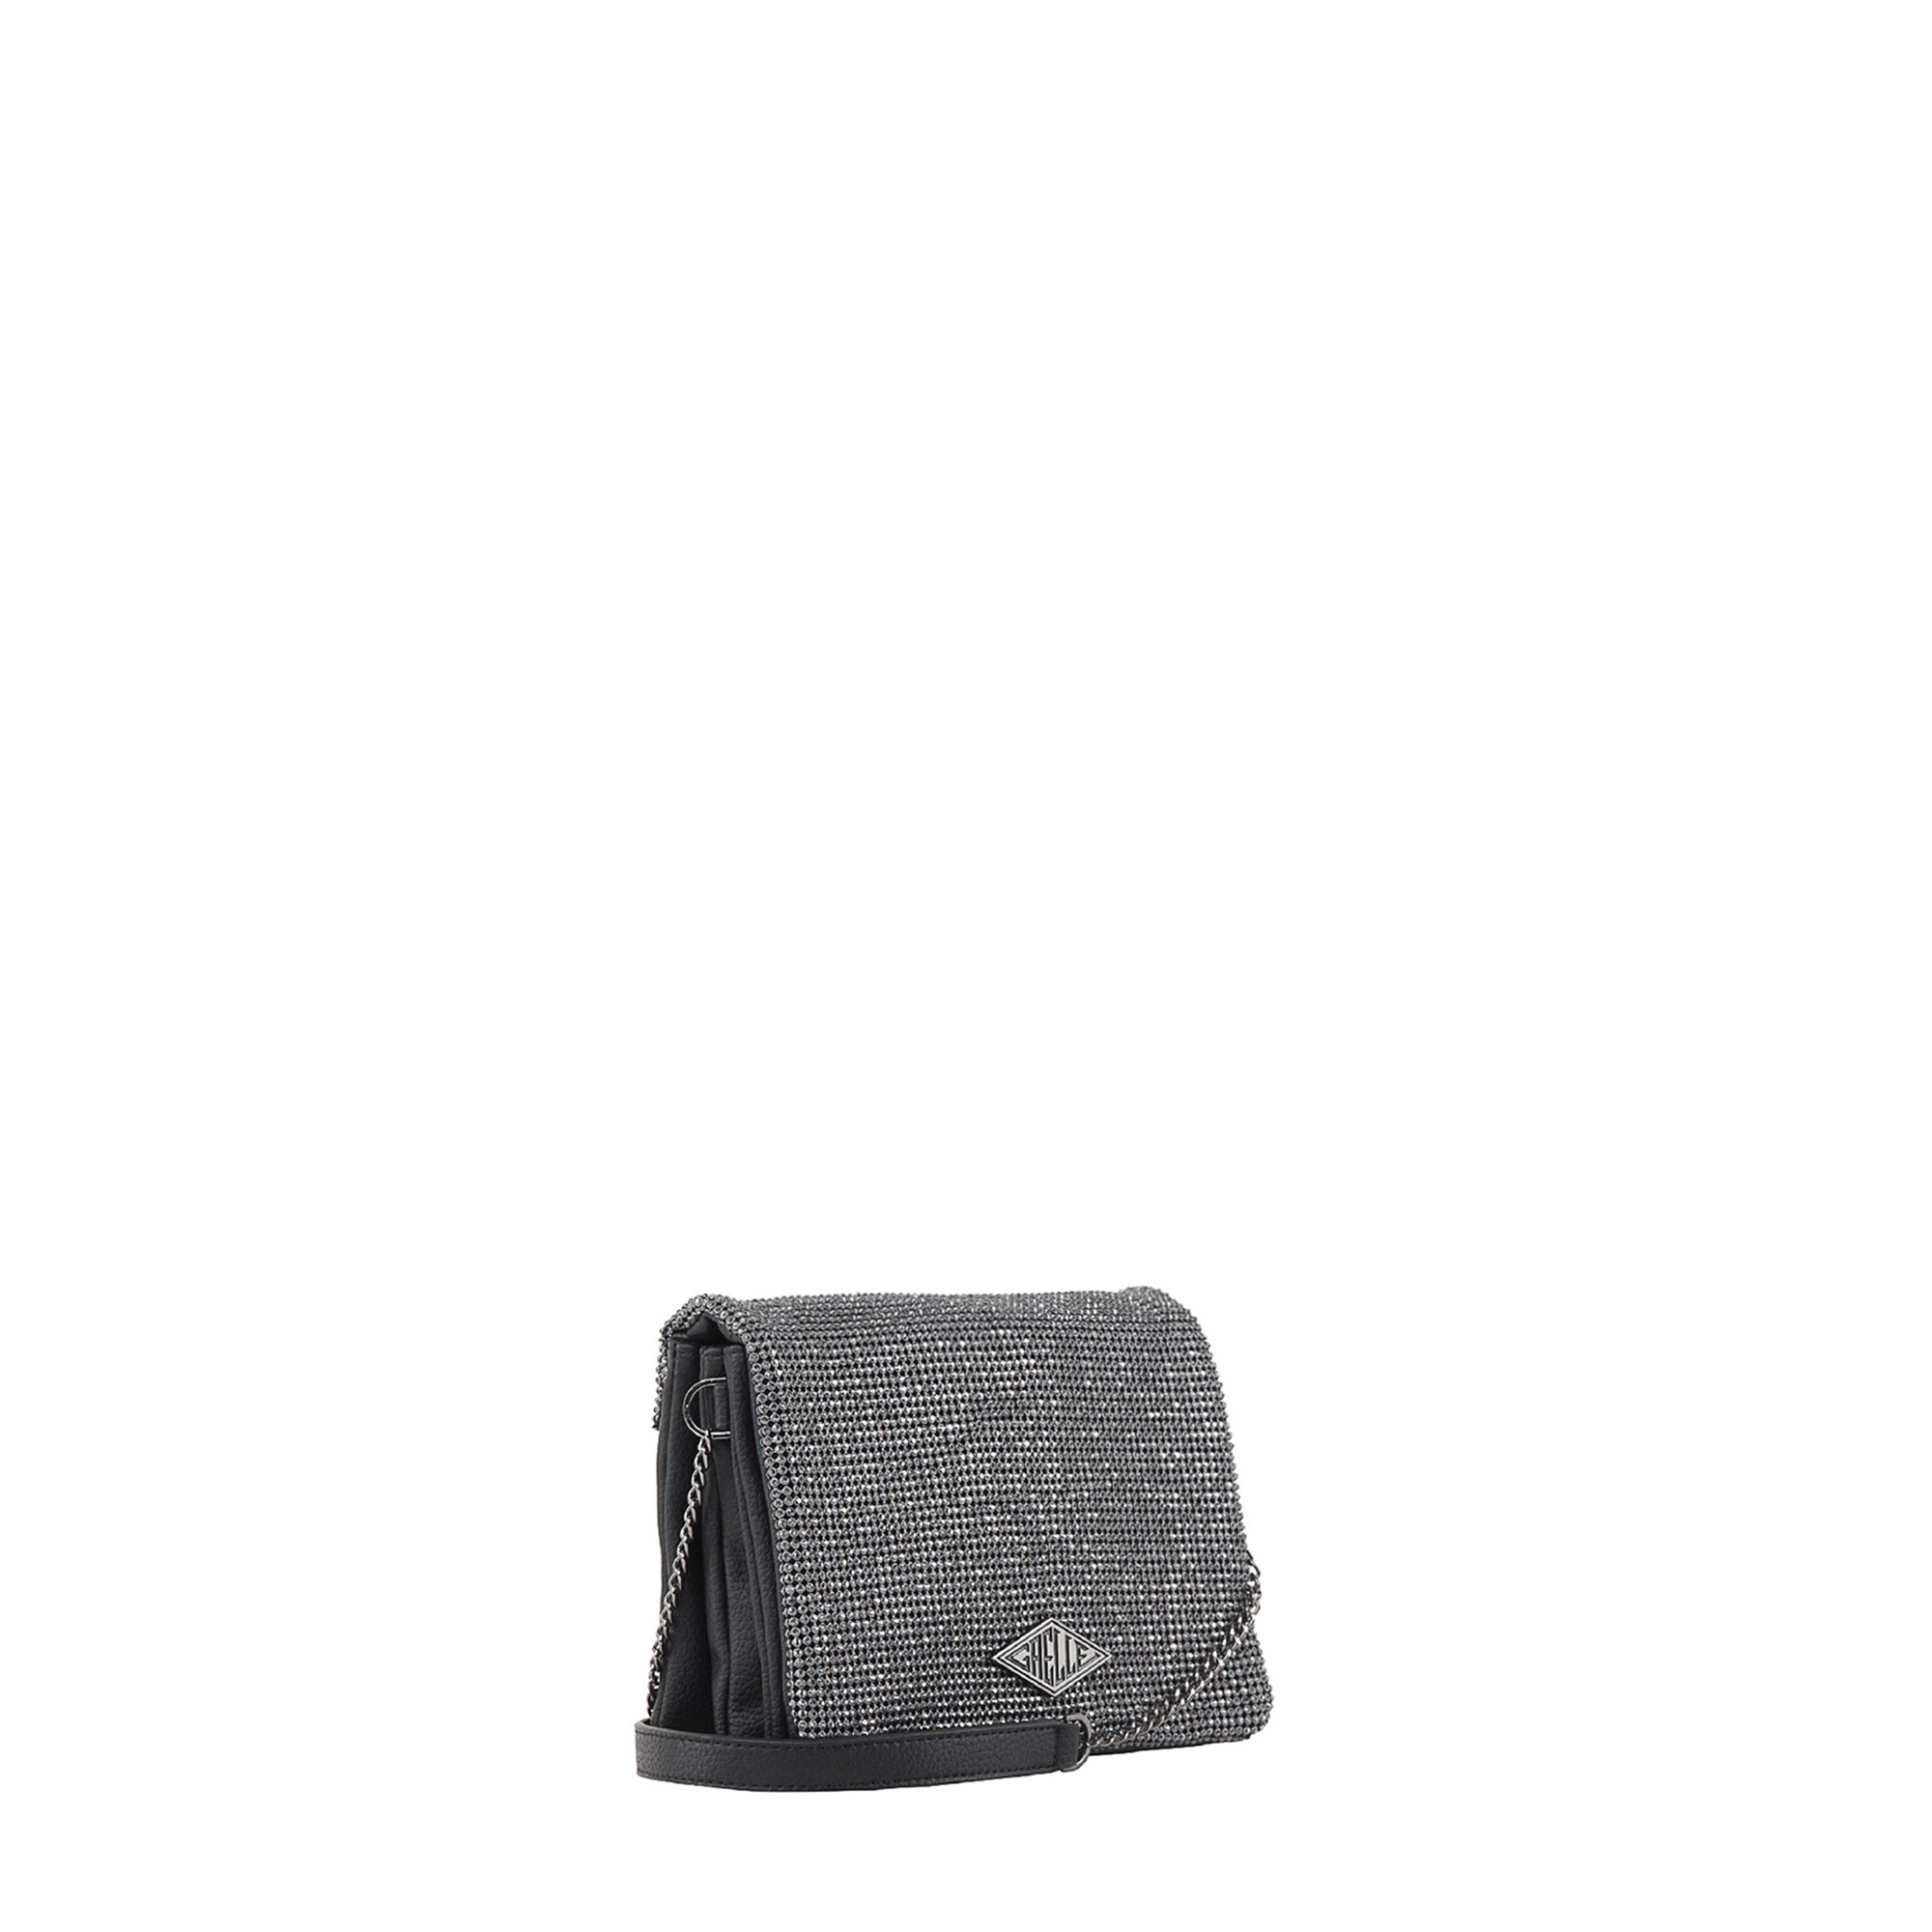 SHOULDER BAG - GBDA1092 - GAELLE PARIS